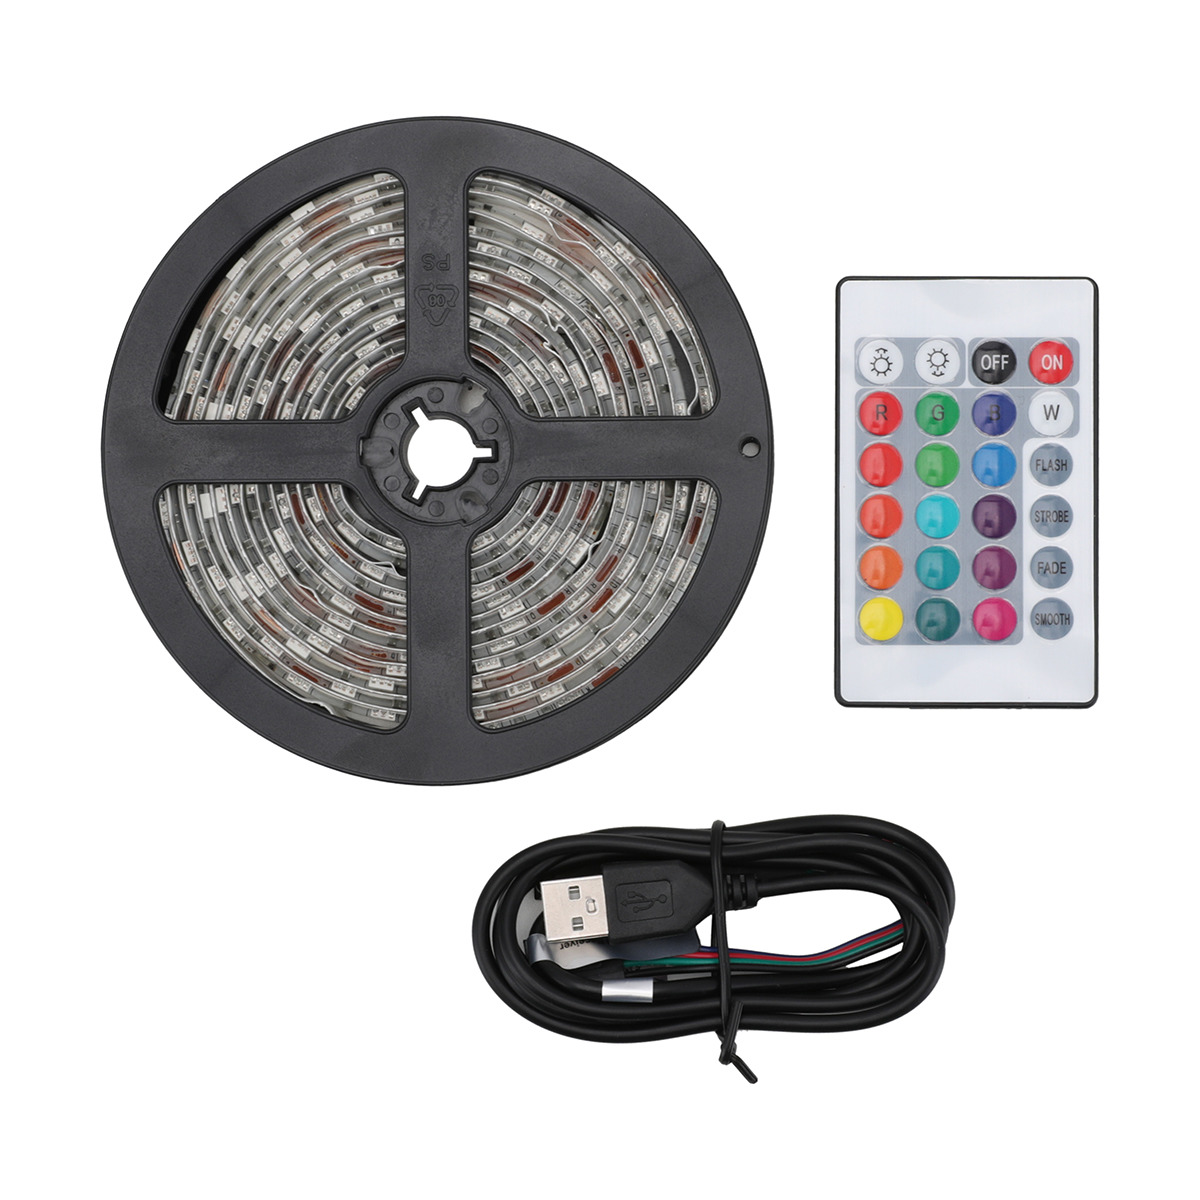 Led Strip Light With Remote 3m Cable Length Strip Lighting Led Strip Lighting Lighting Makeover